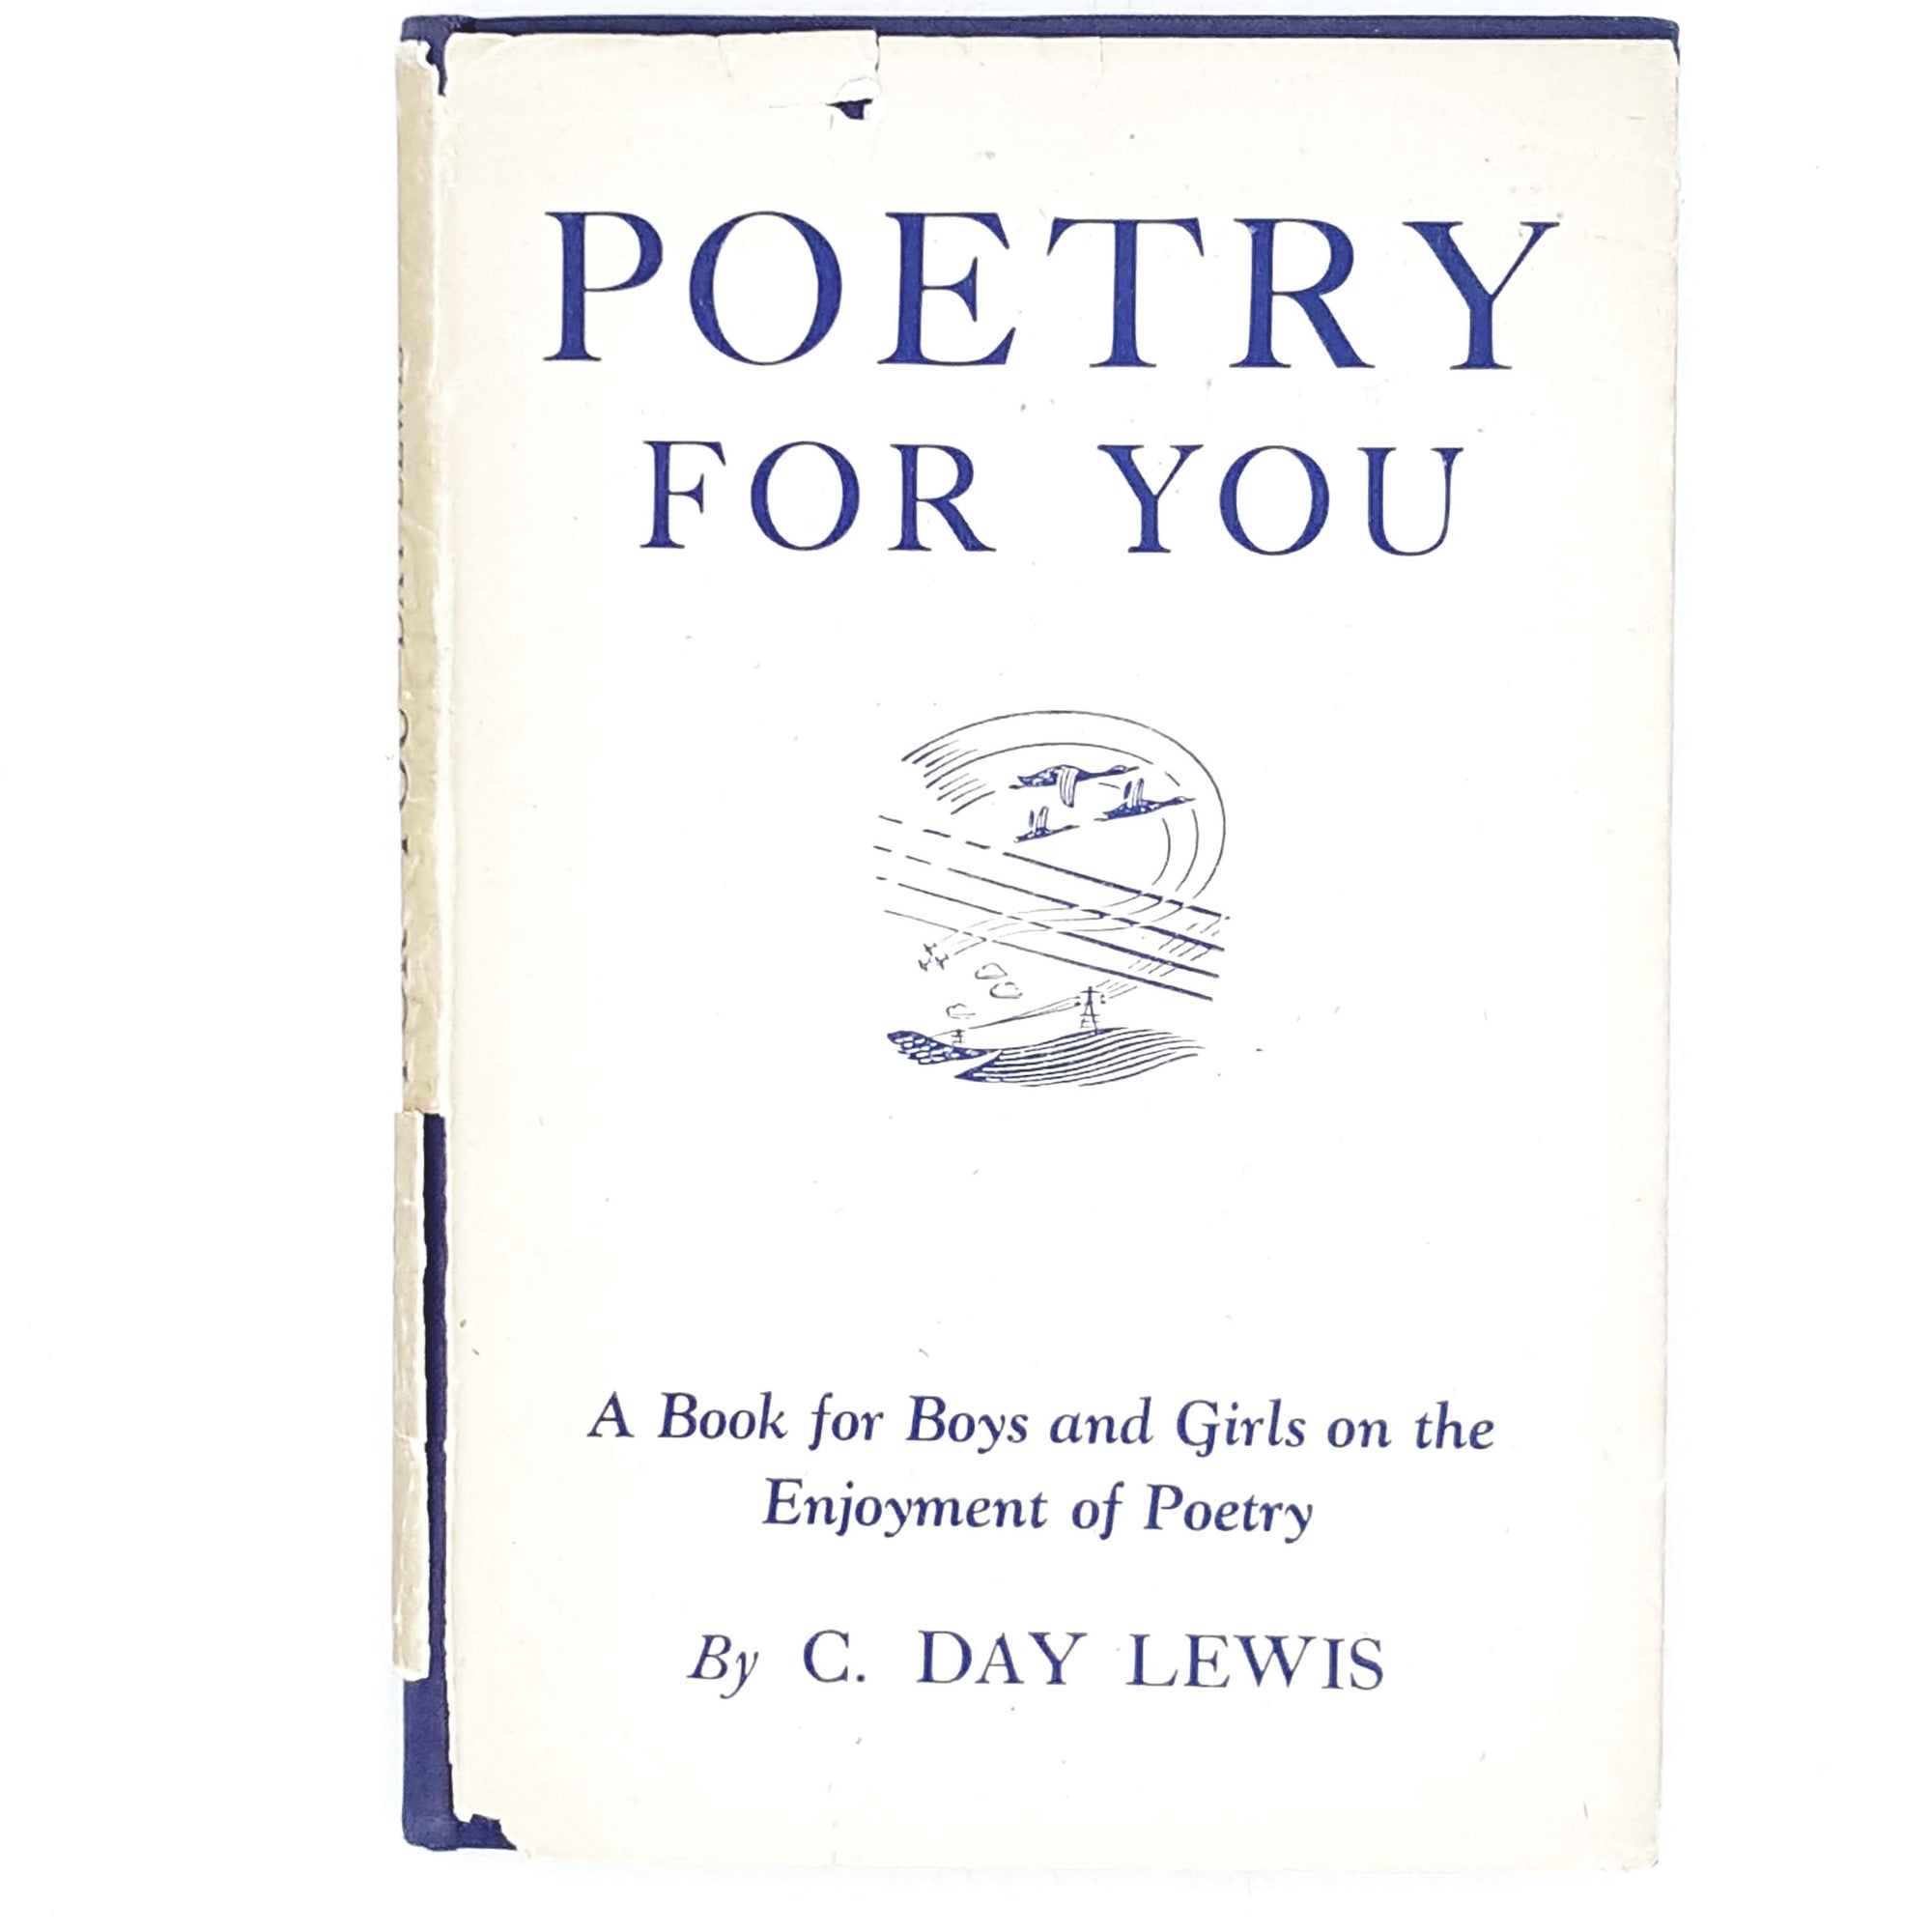 Poetry for You by C. Day Lewis 1945